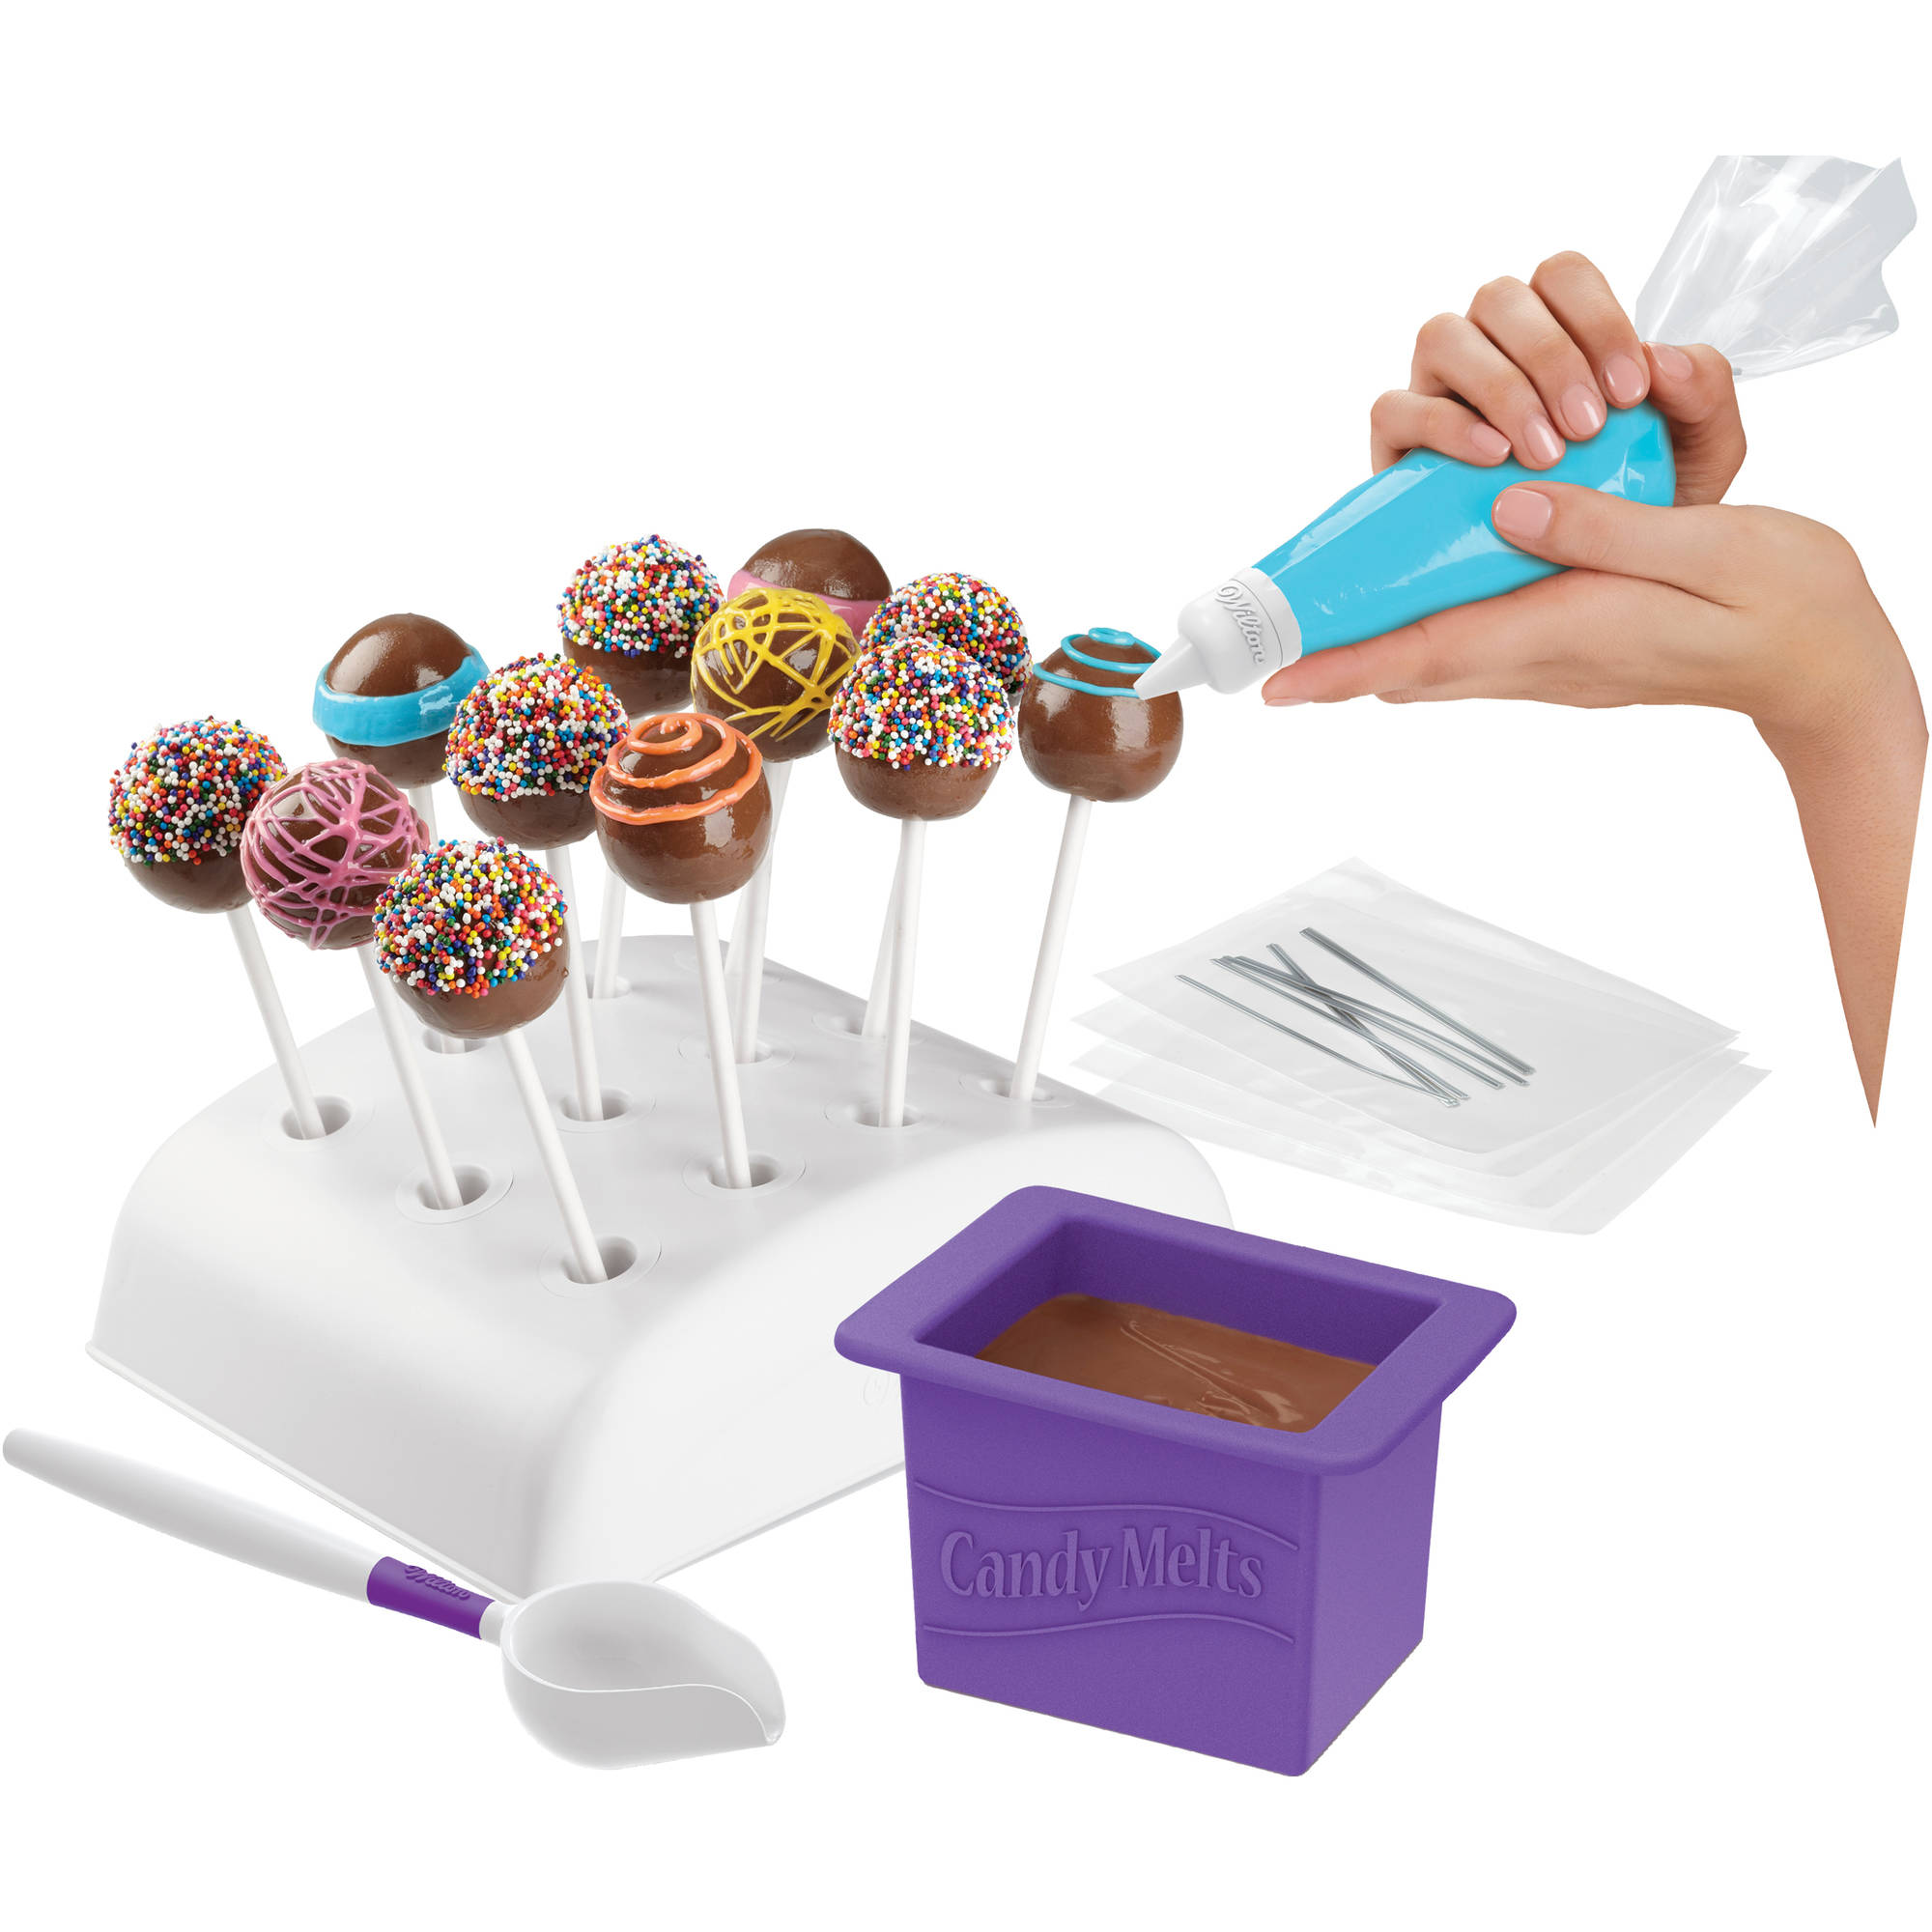 Wilton Candy Melts Dip 'N Decorate Decorating Essentials Set